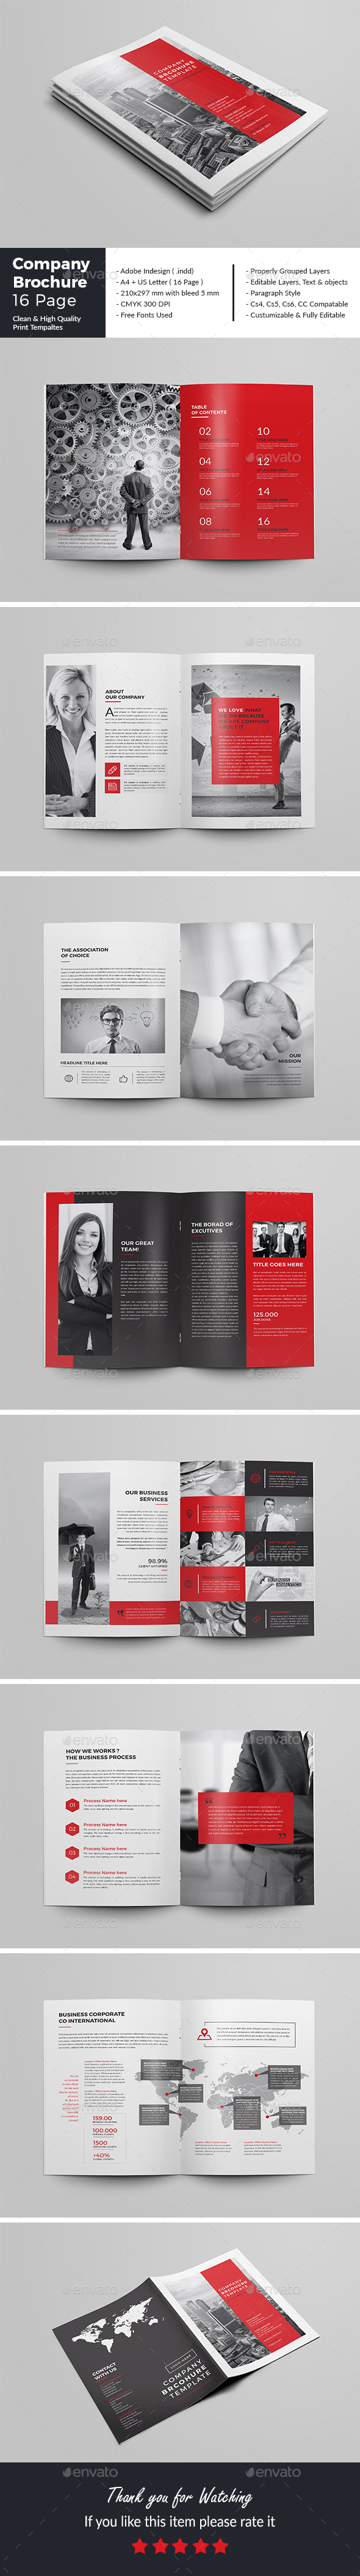 Company Brochure Template 16 Page - Corporate Brochures